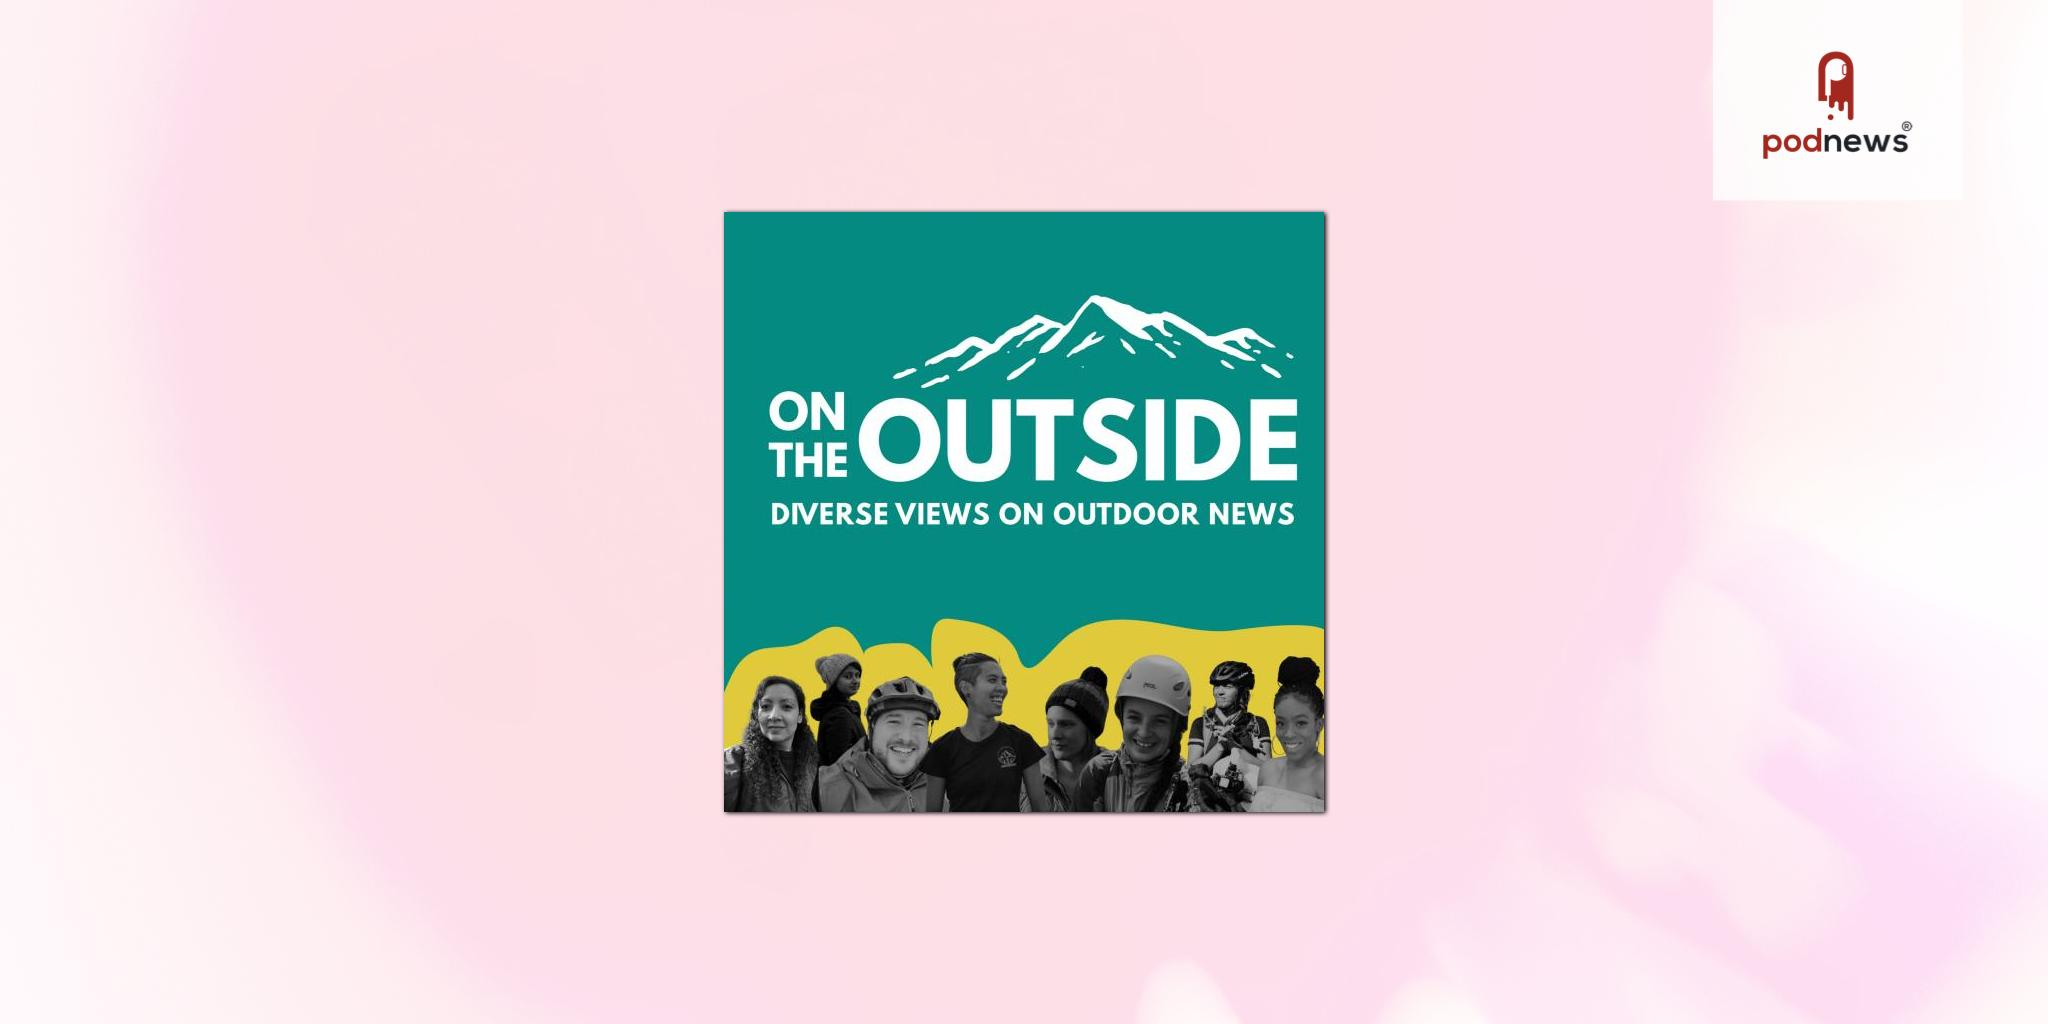 A new panel-show podcast sharing diverse views on the outdoors news in the UK